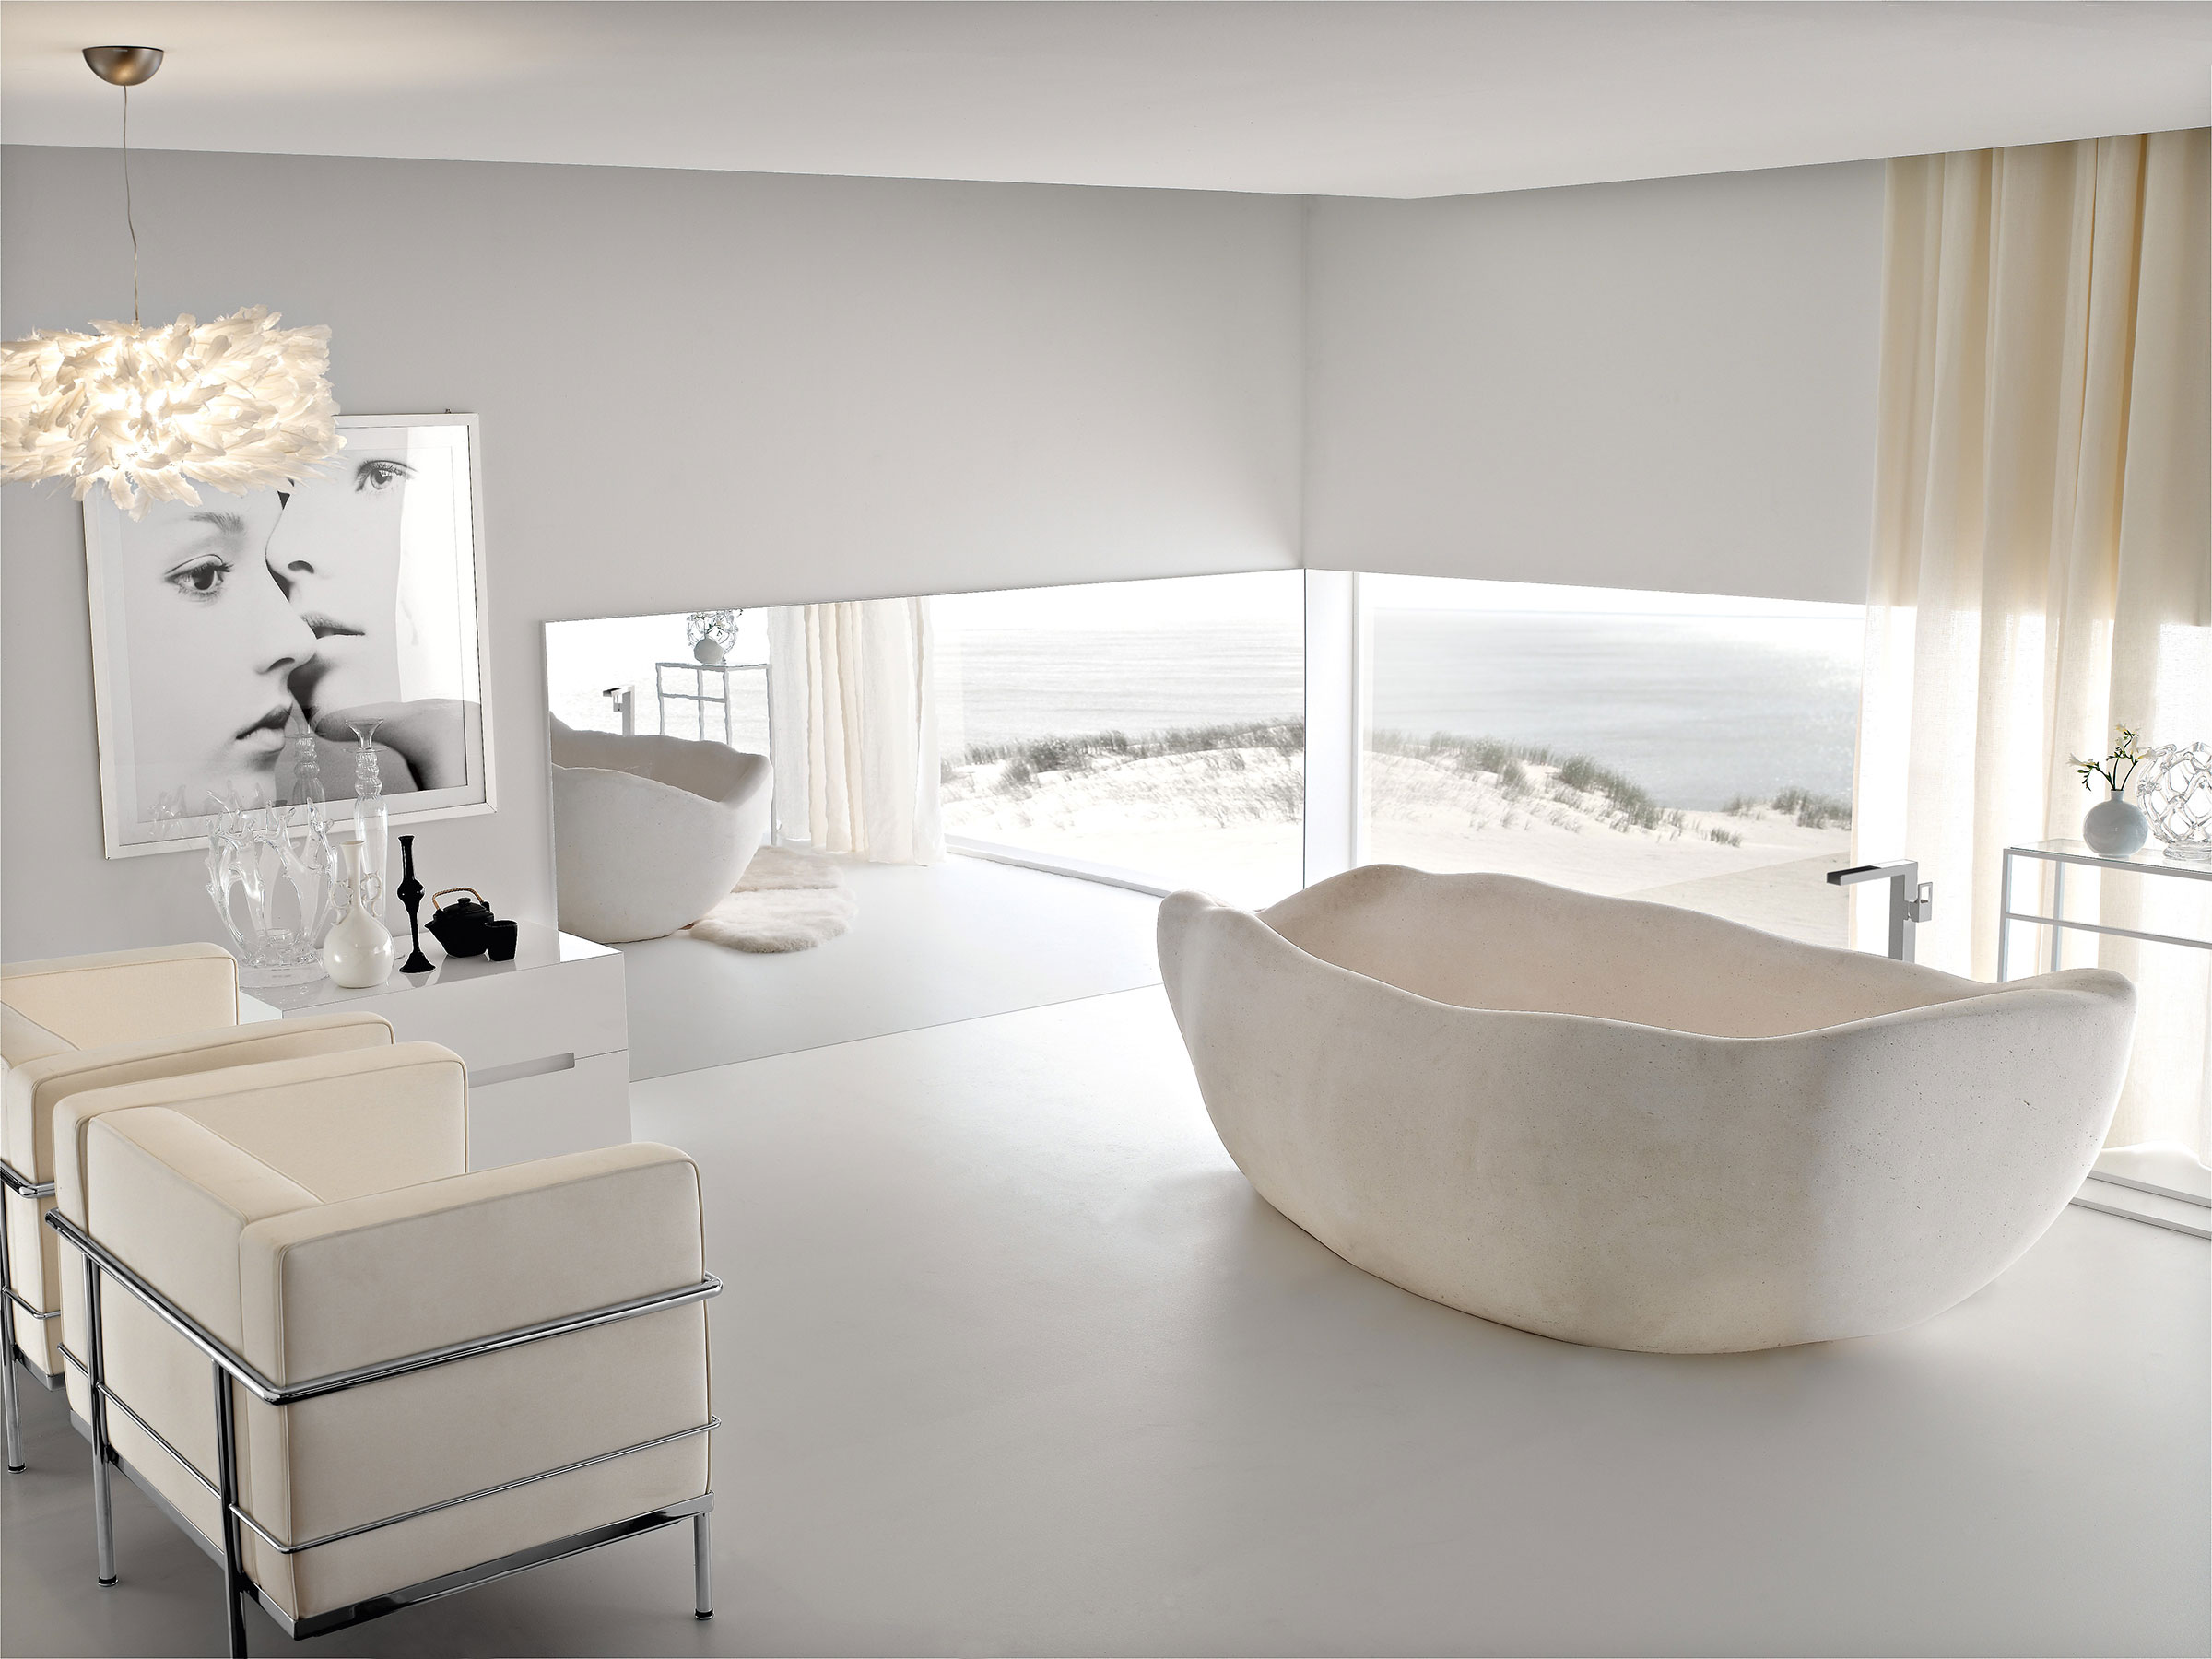 White stone freestanding tub